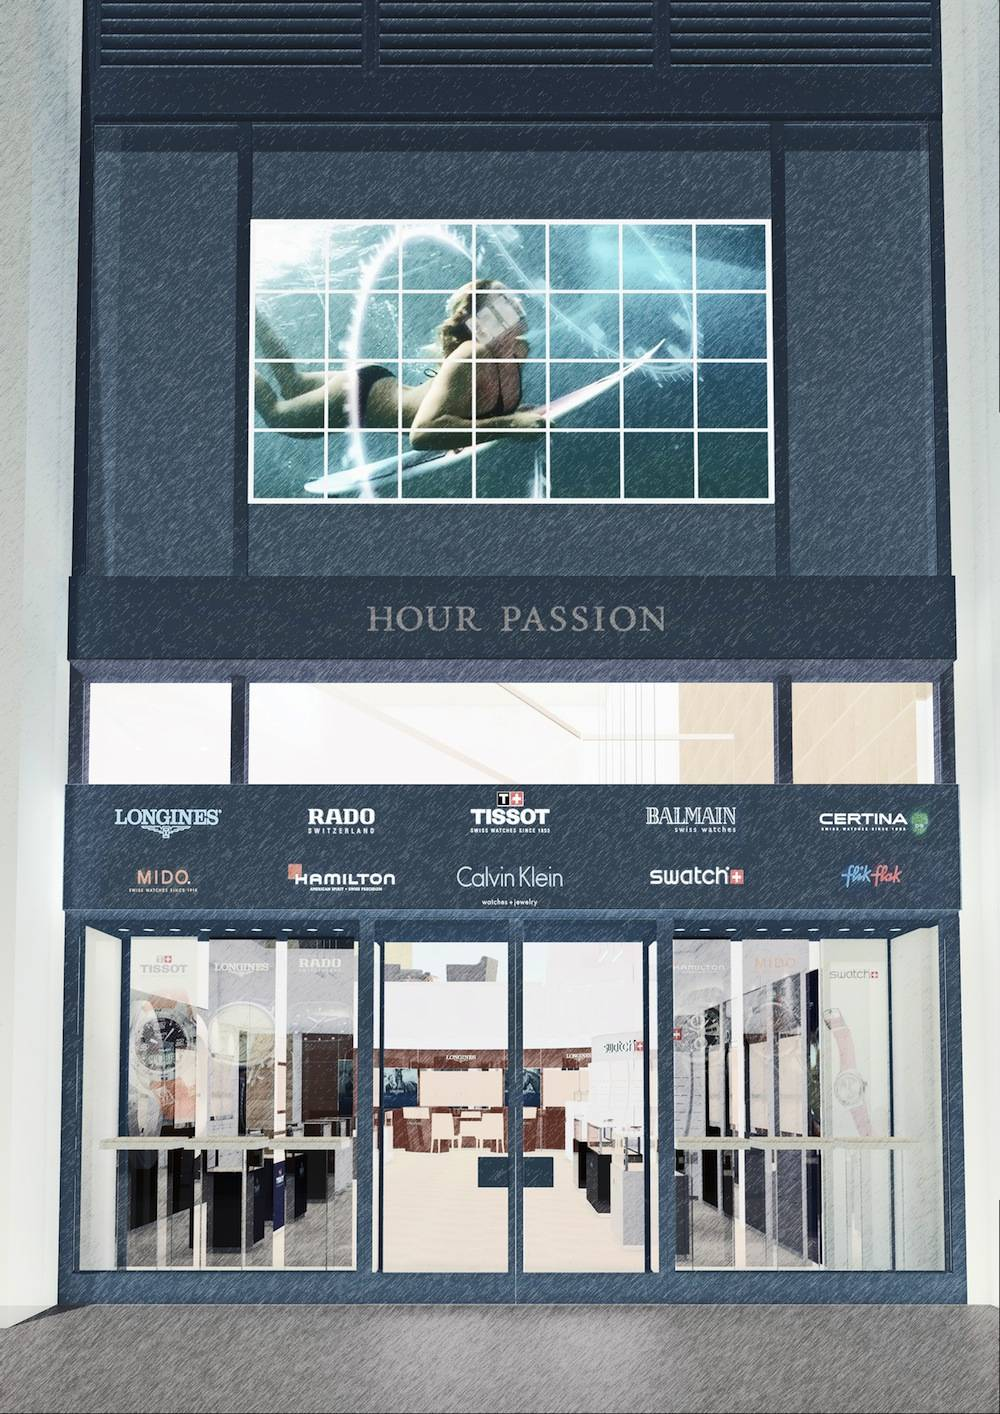 A rendering of the Hour Passion New York facade.